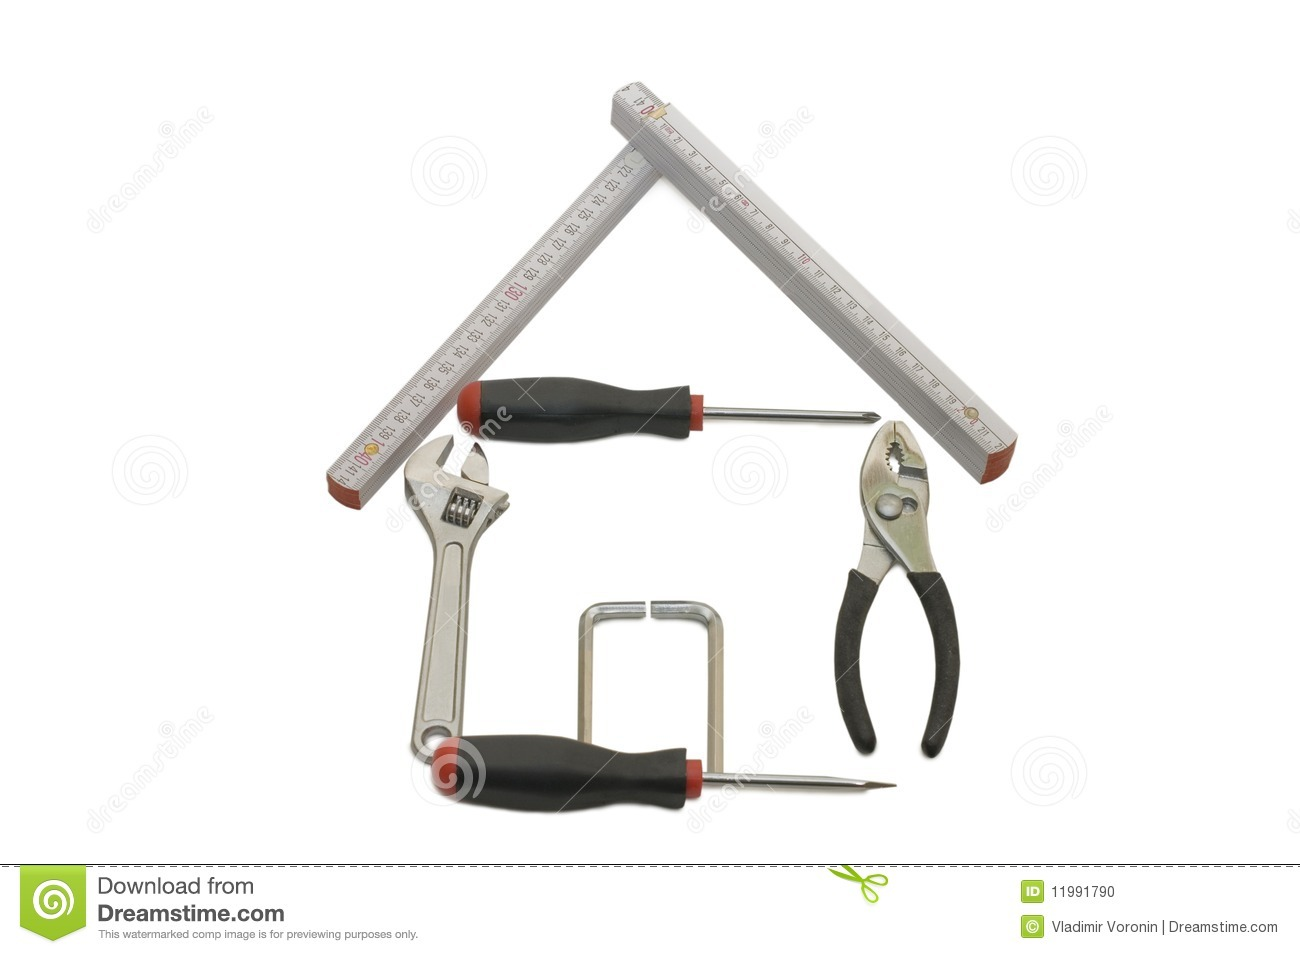 House from building tools stock photo image 11991790 Tools to build a house